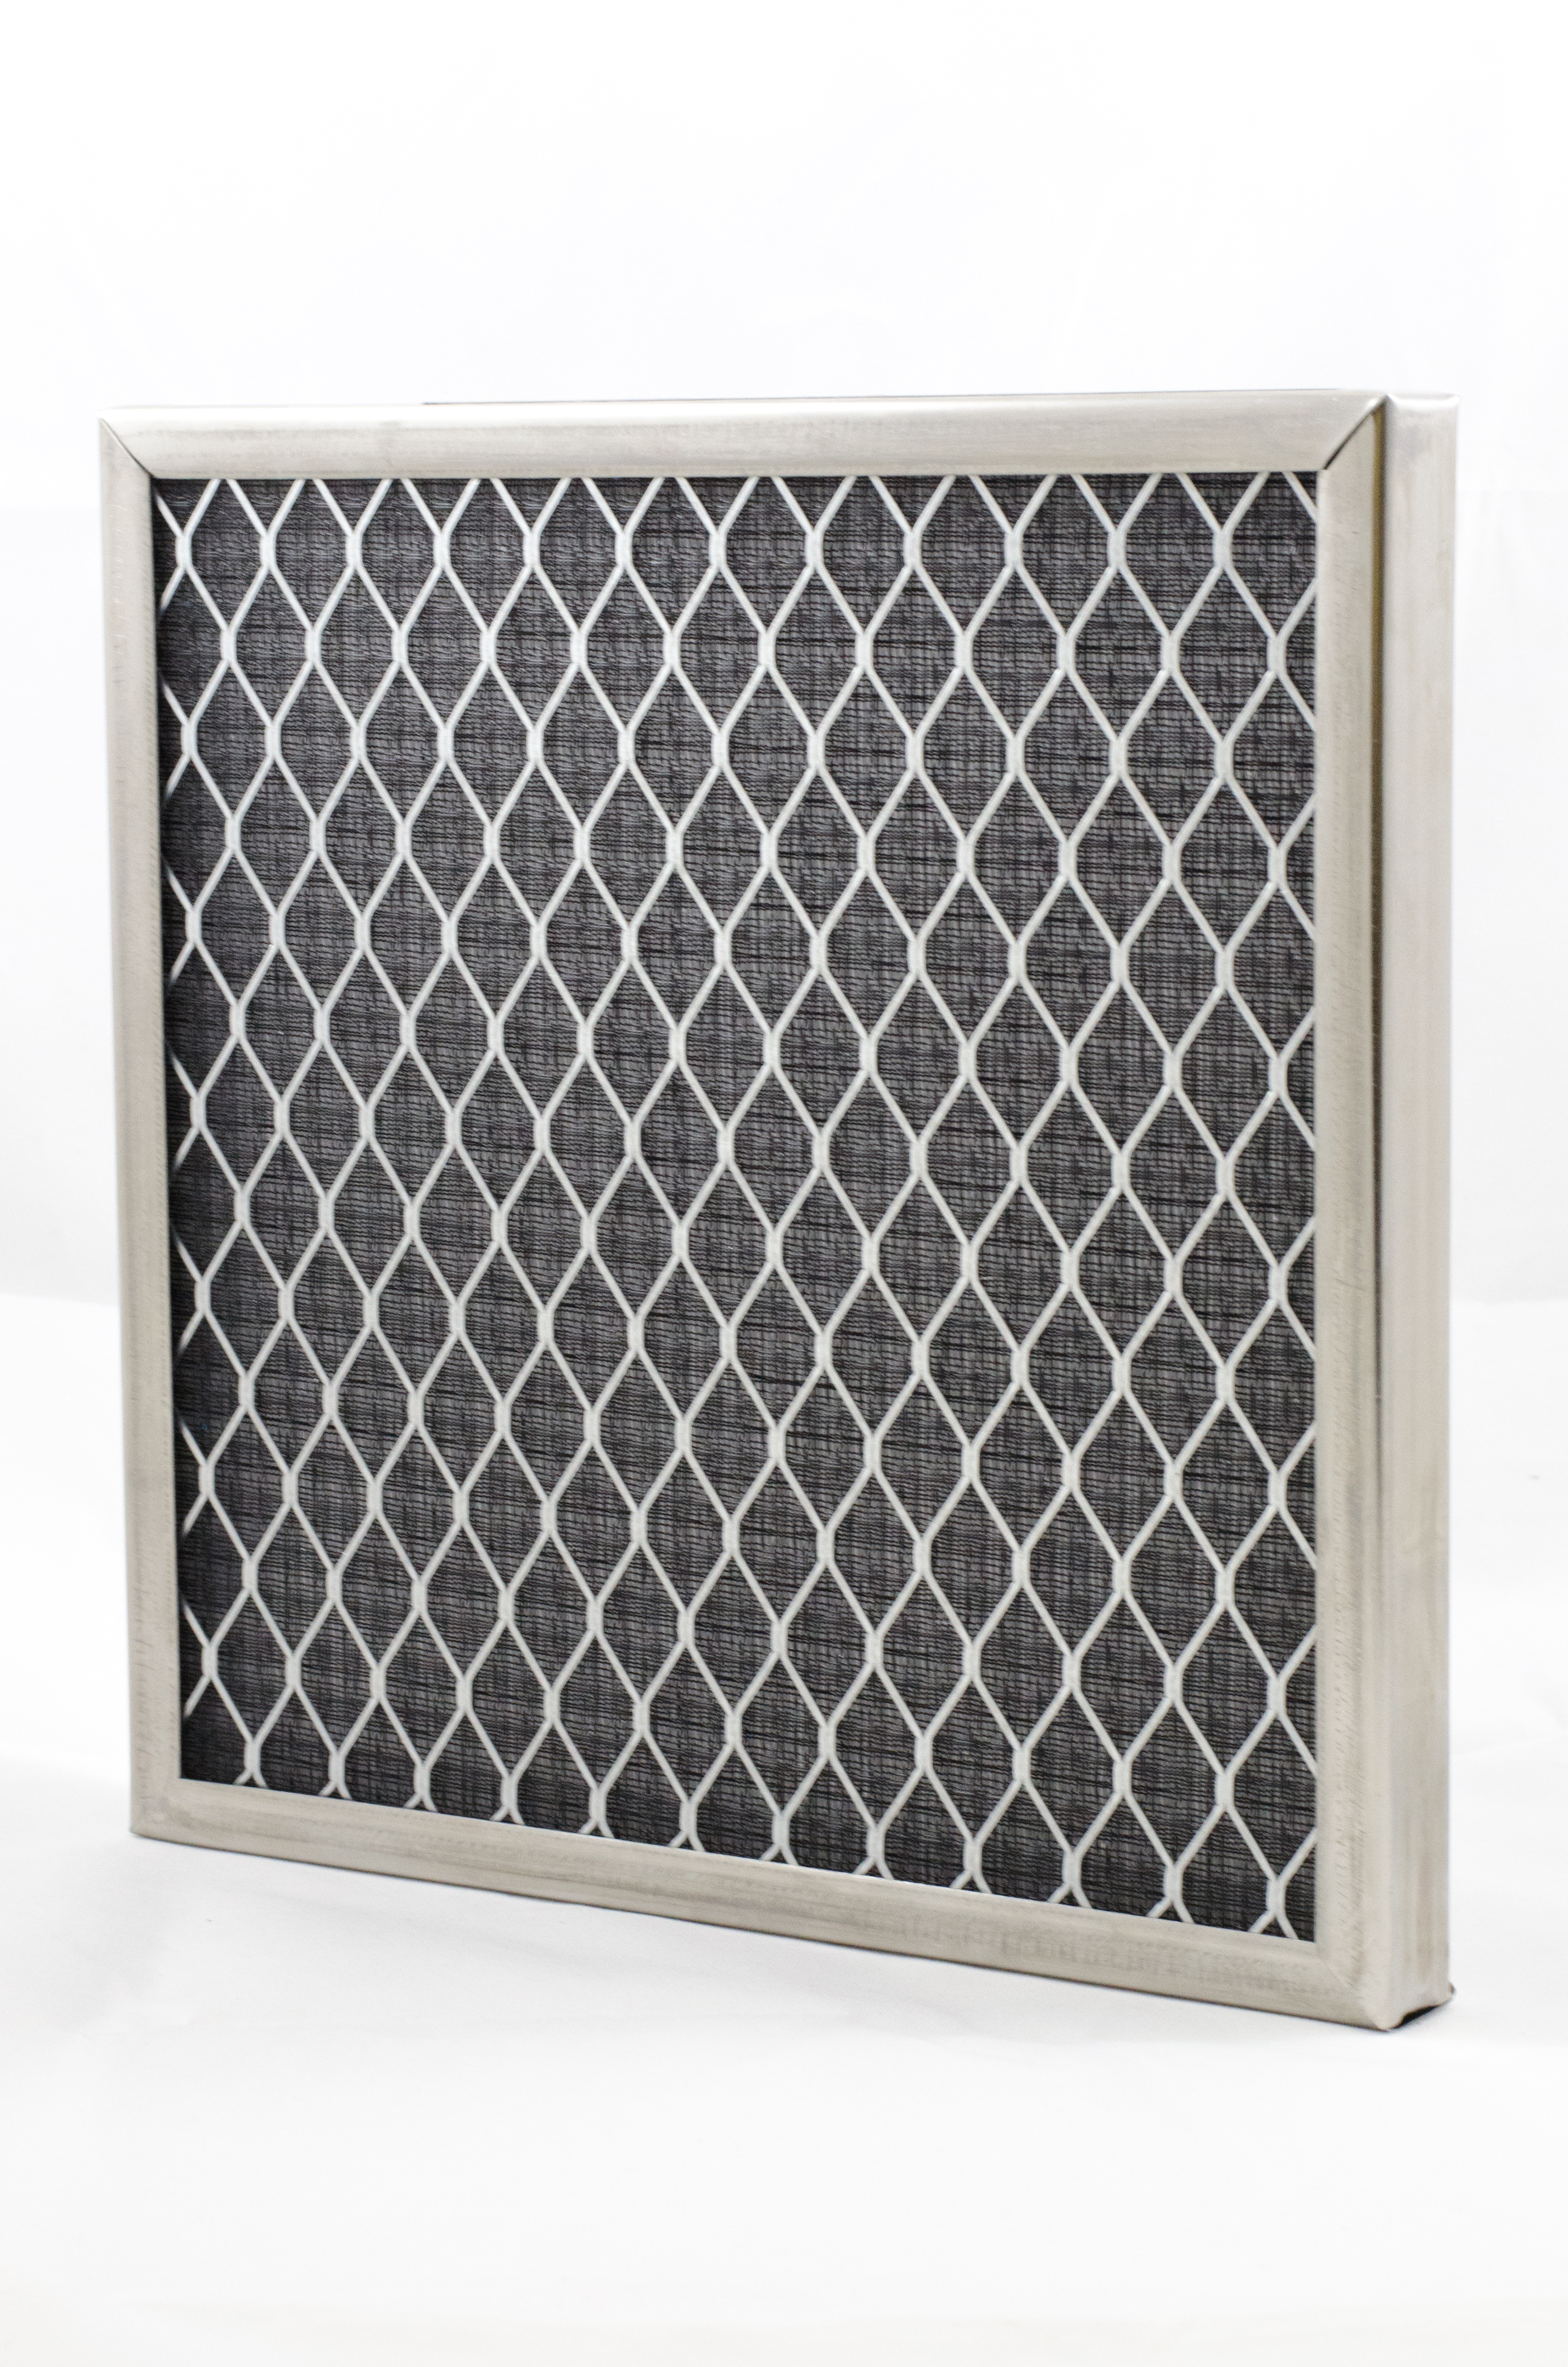 LifeStyle Plus Air Filters